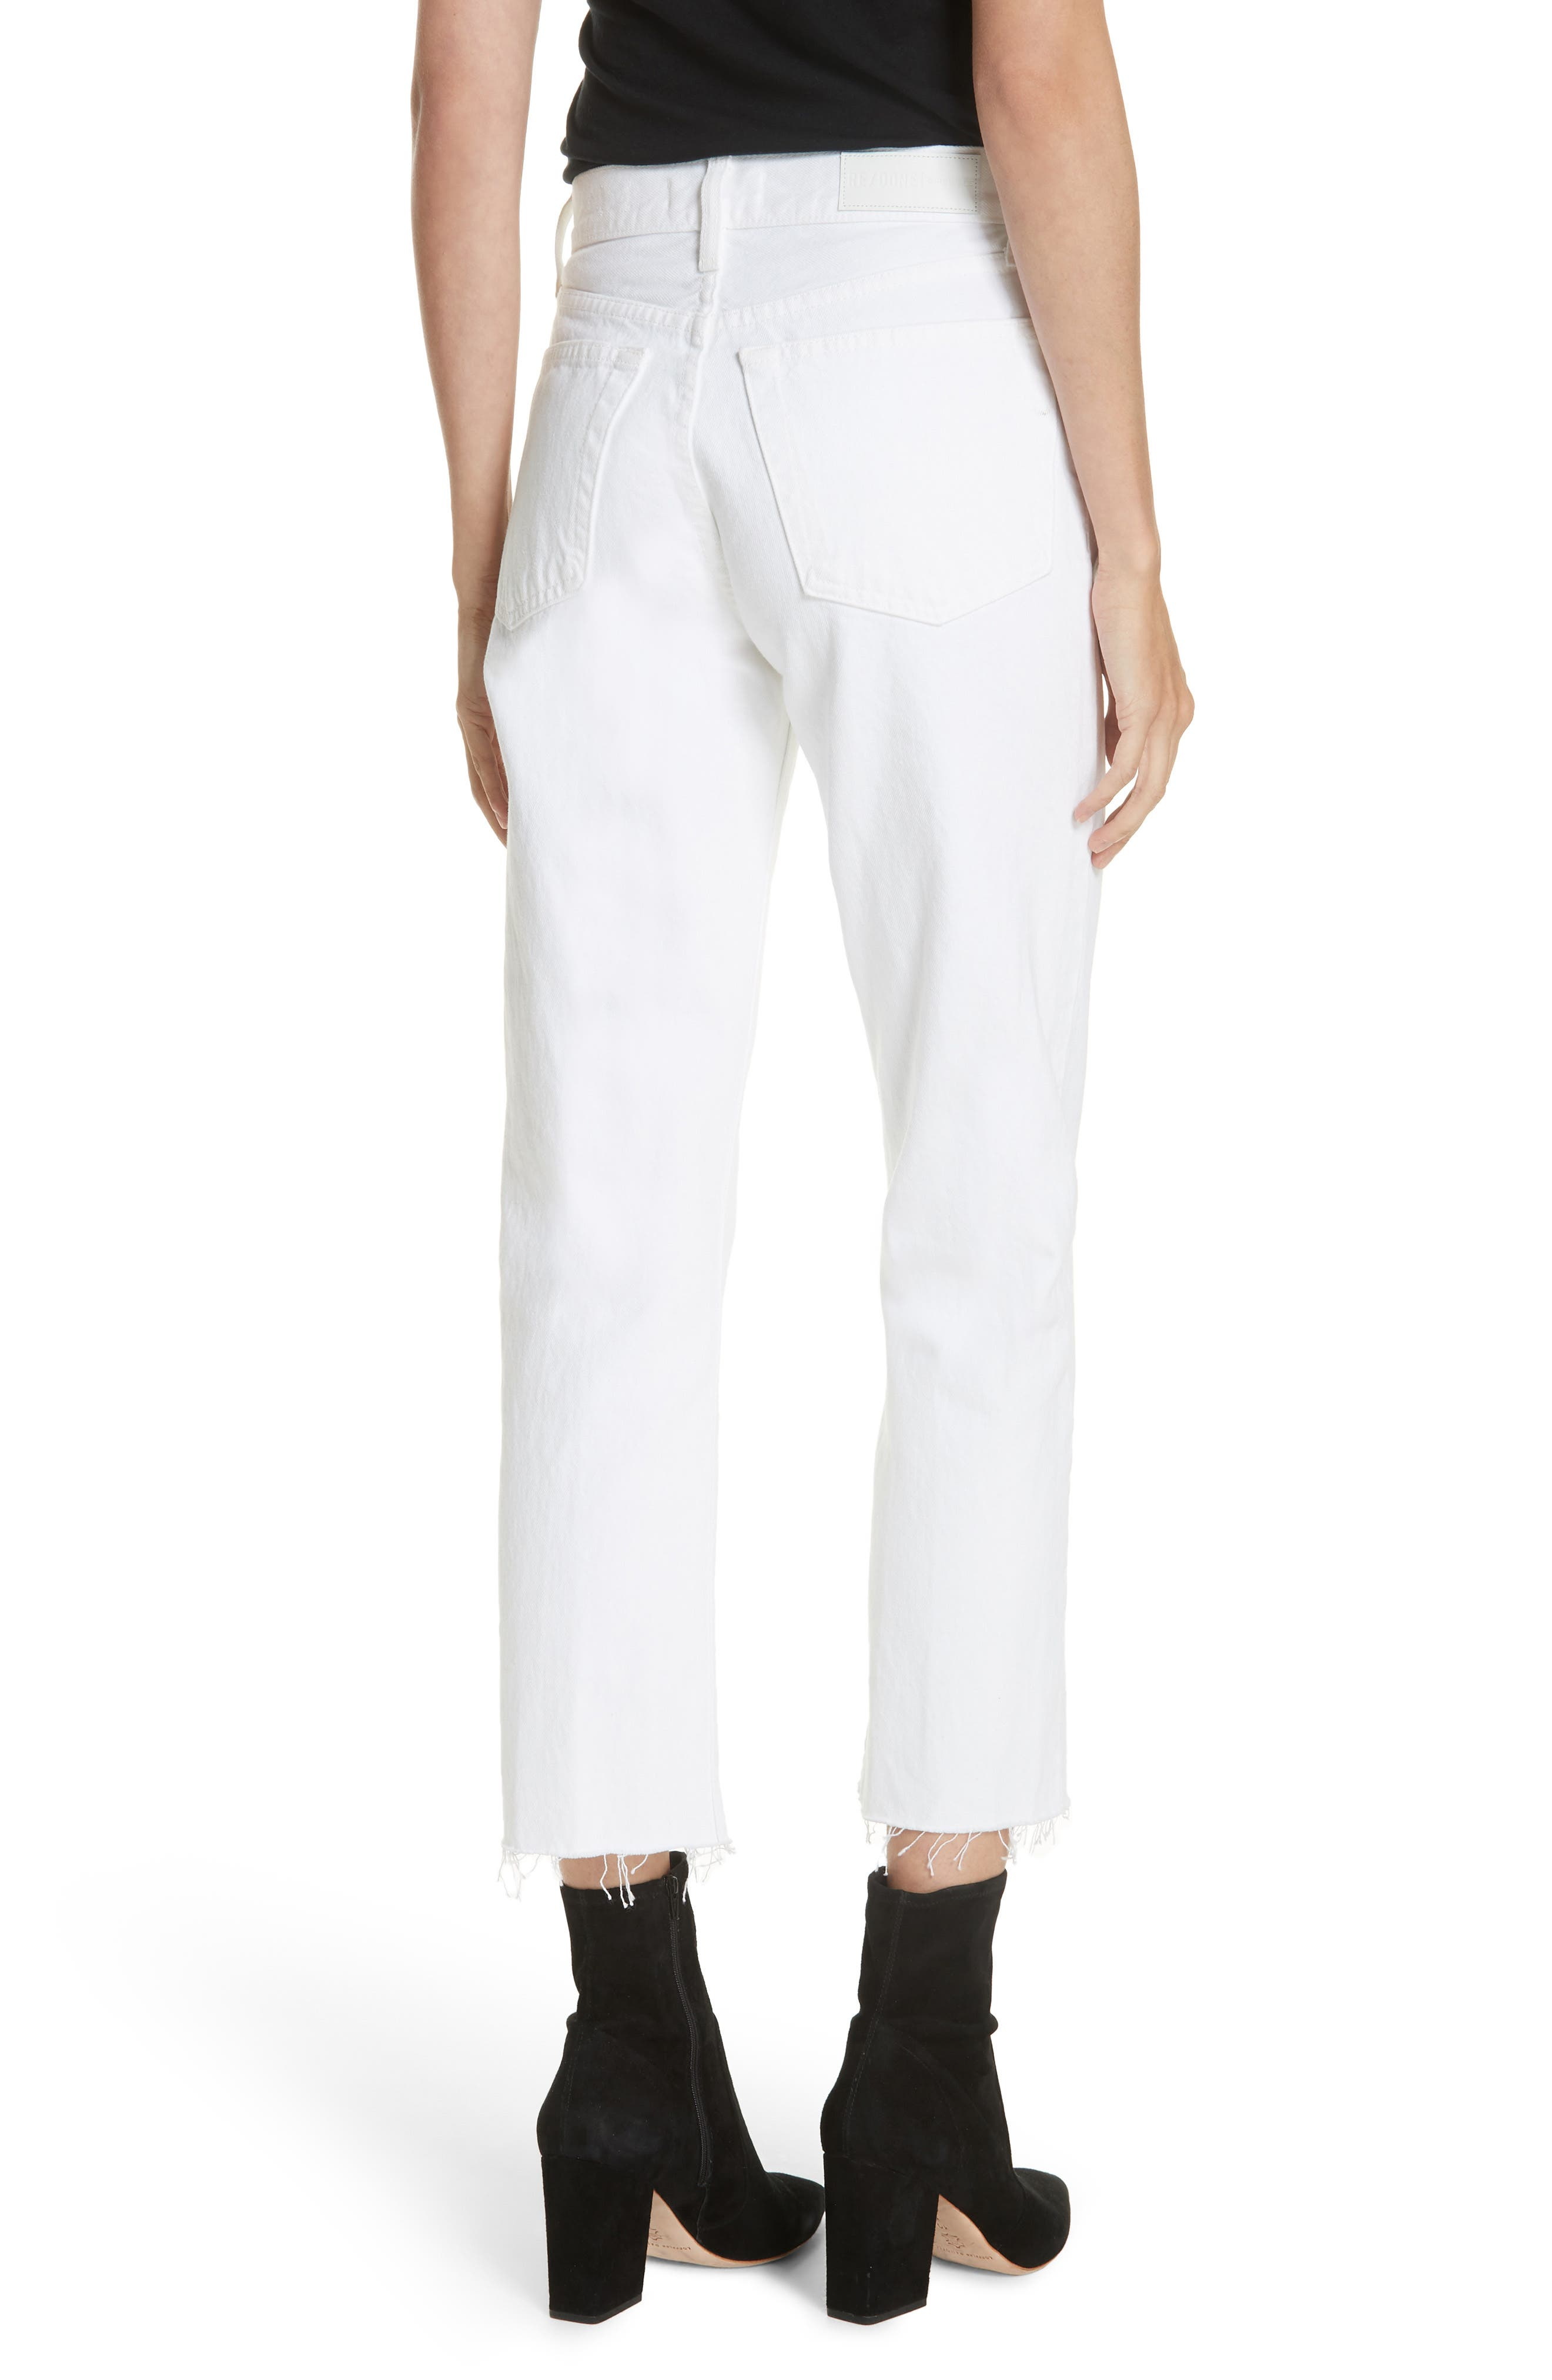 Originals High Waist Stove Pipe Jeans,                             Alternate thumbnail 2, color,                             WHITE